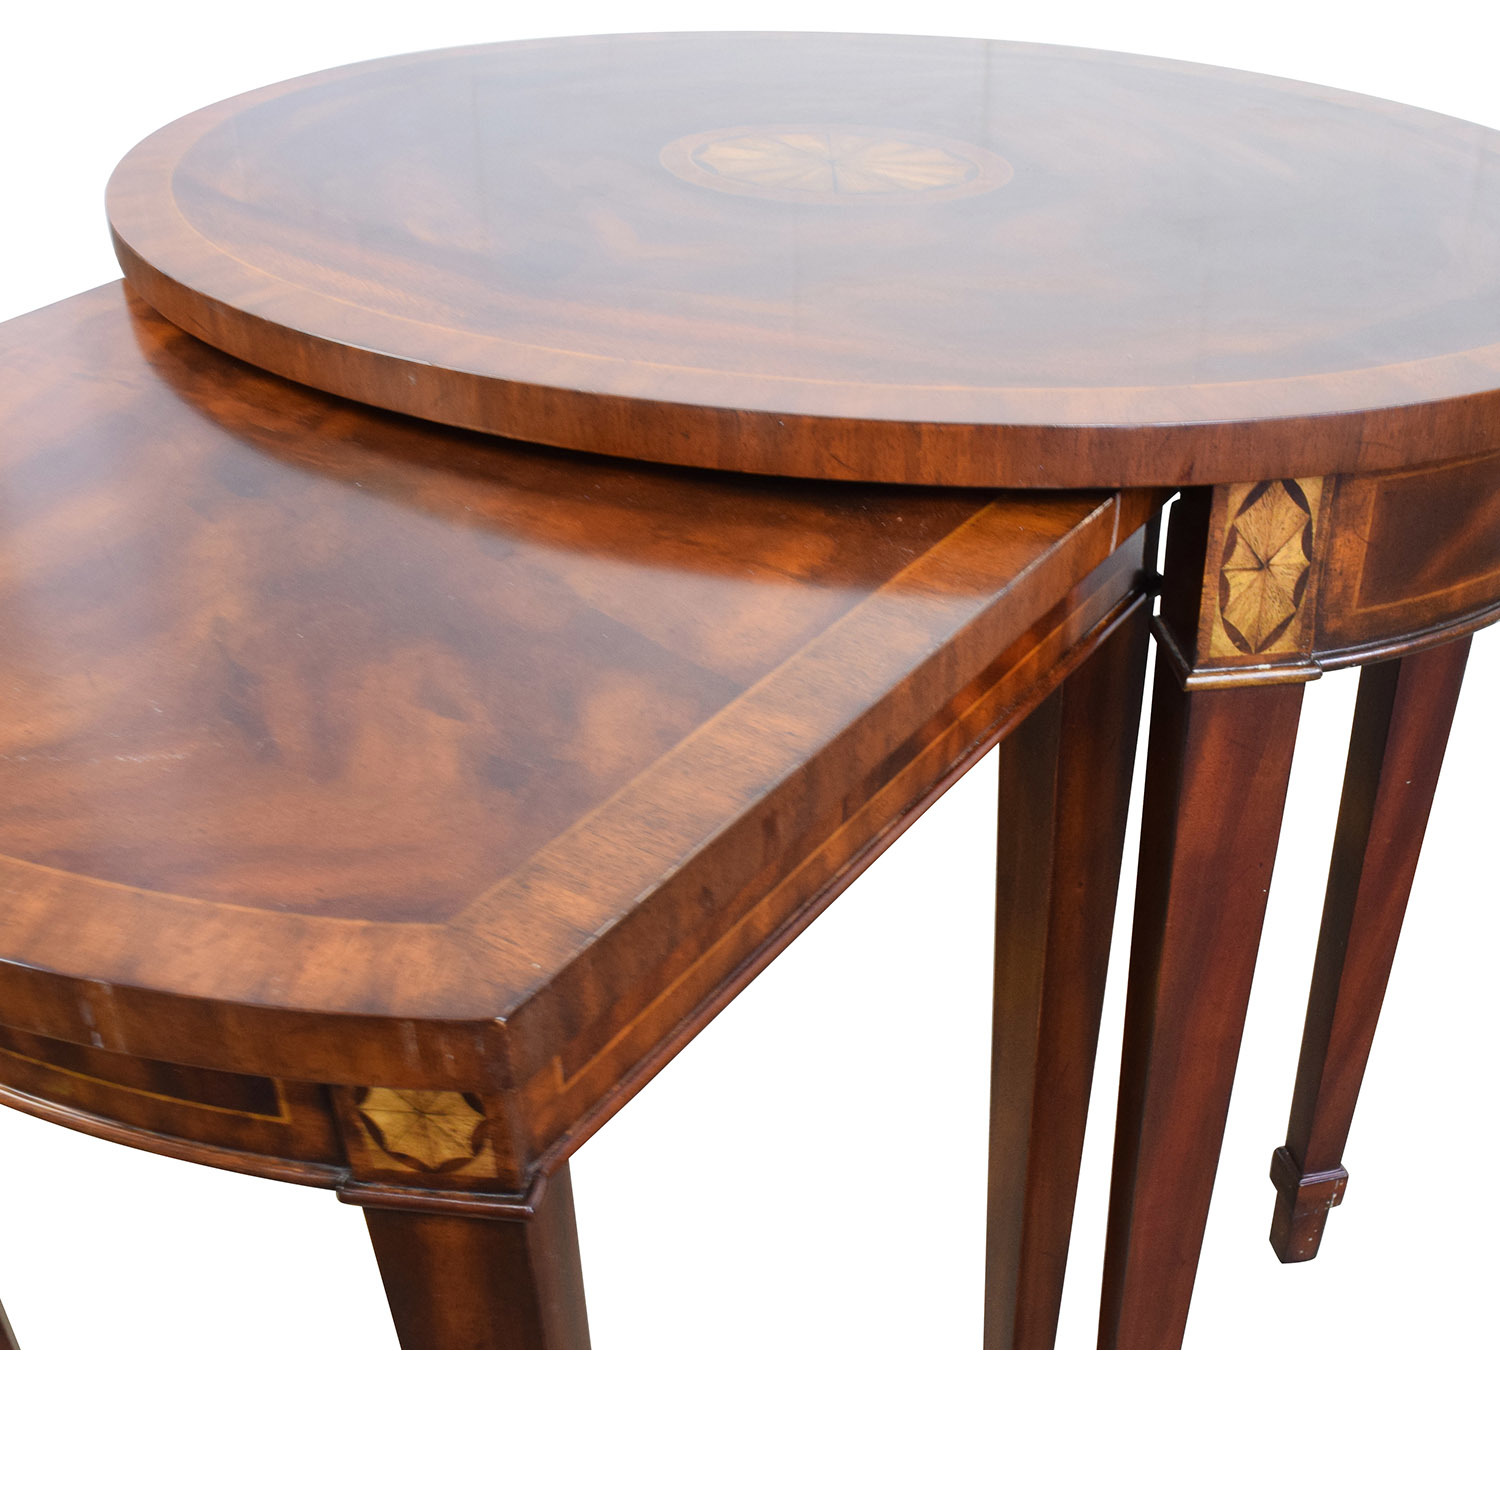 43% OFF Antique Reproduction Wood Nesting Side Tables Tables